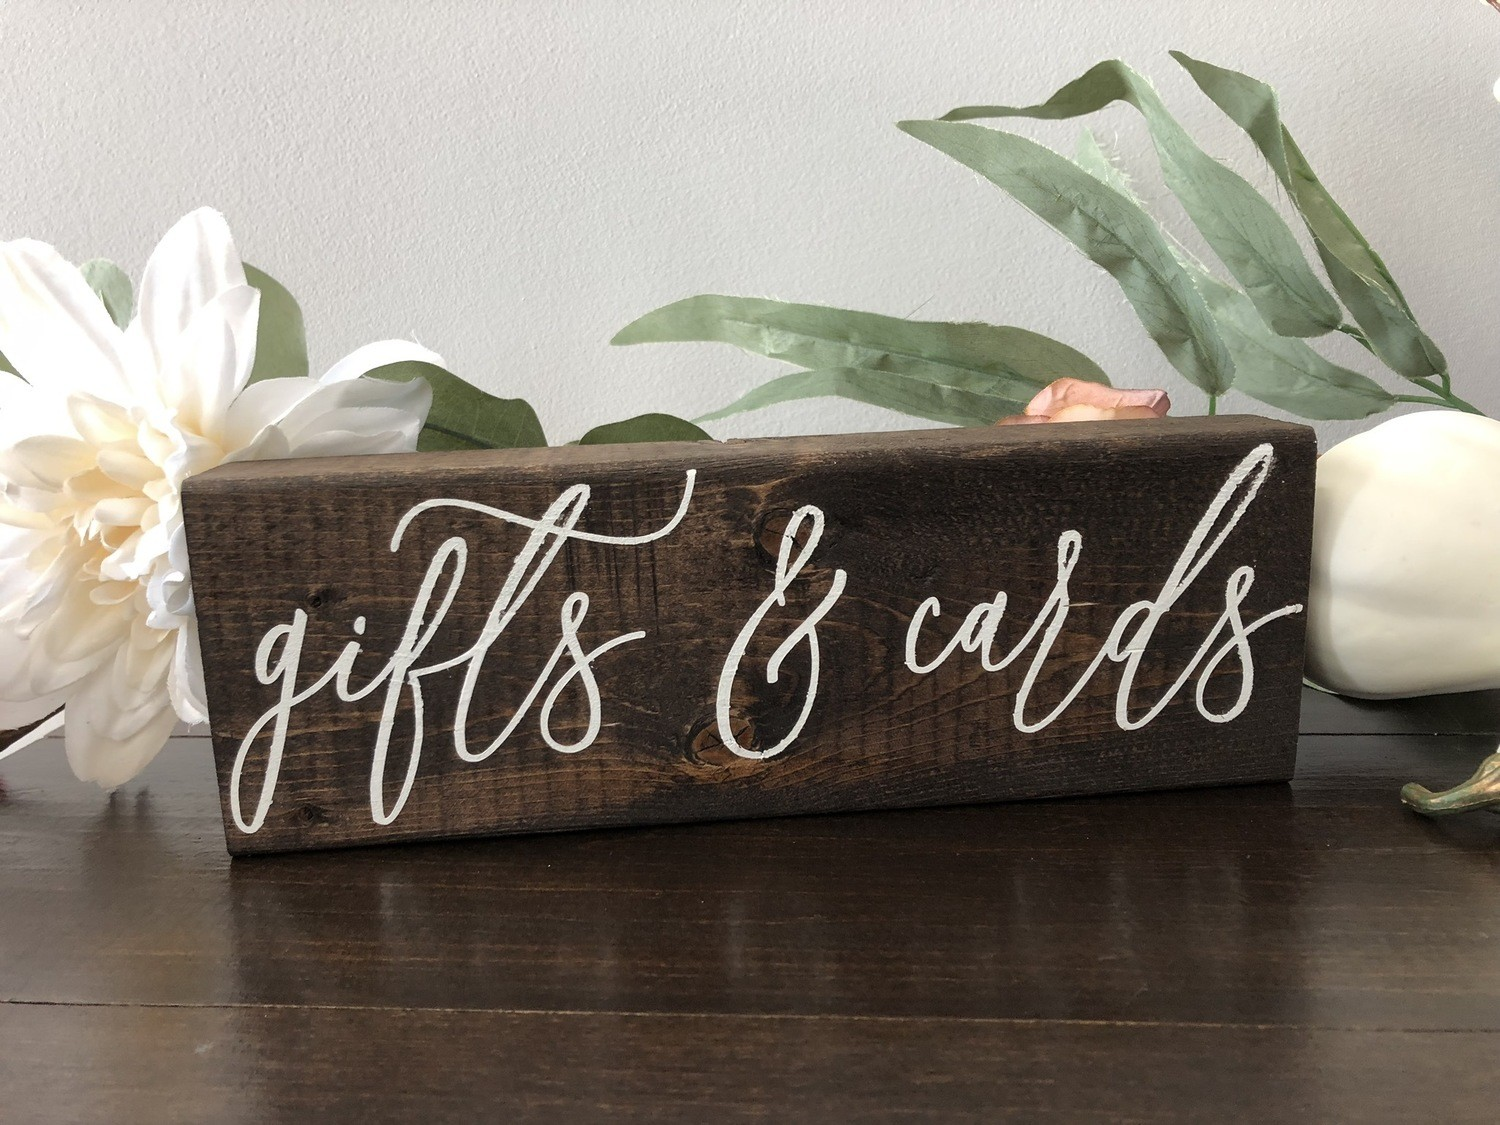 Gifts & Cards Sign (2in x 4in x 10in)